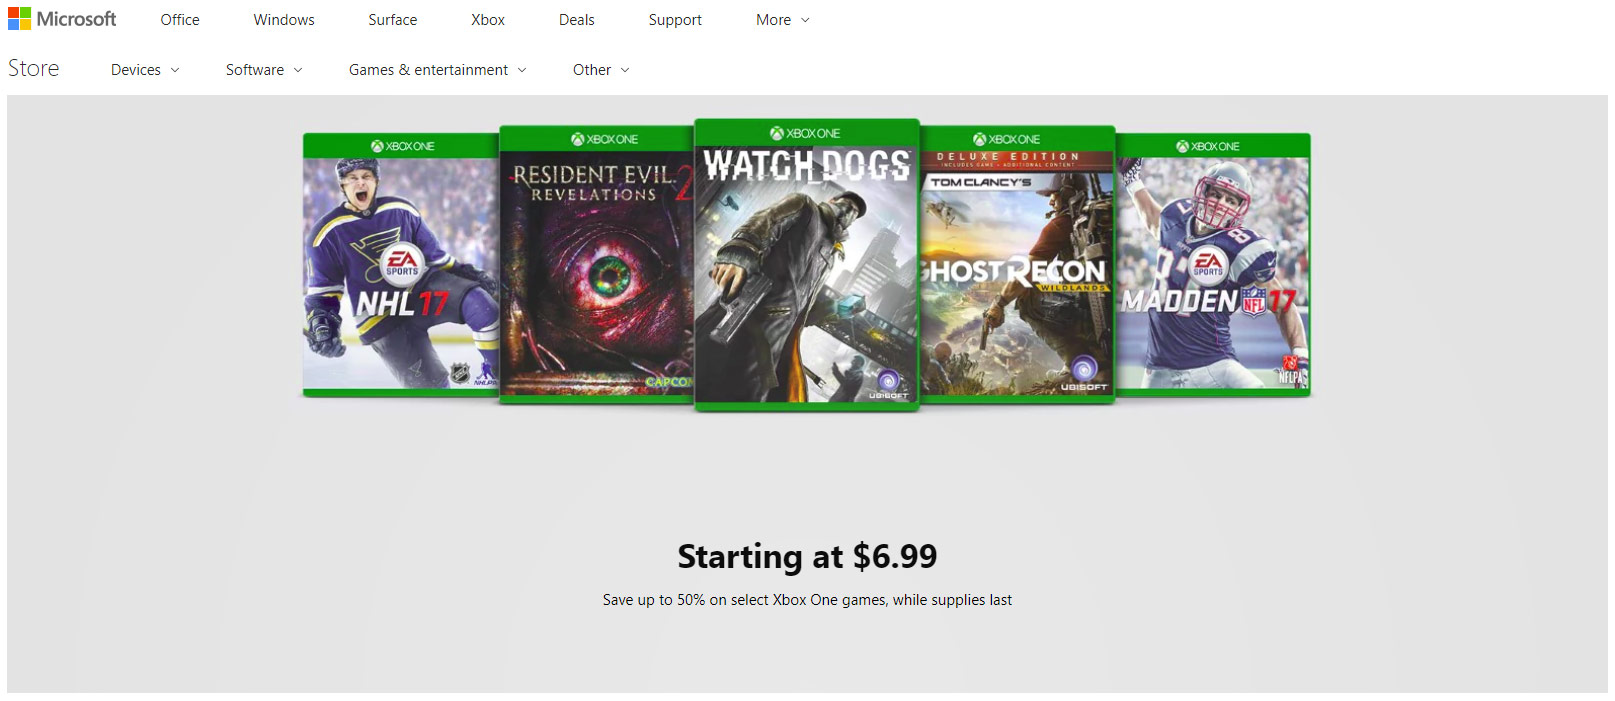 Xbox One Games On Sale : Microsoft store s xbox one game clearance sale starts at